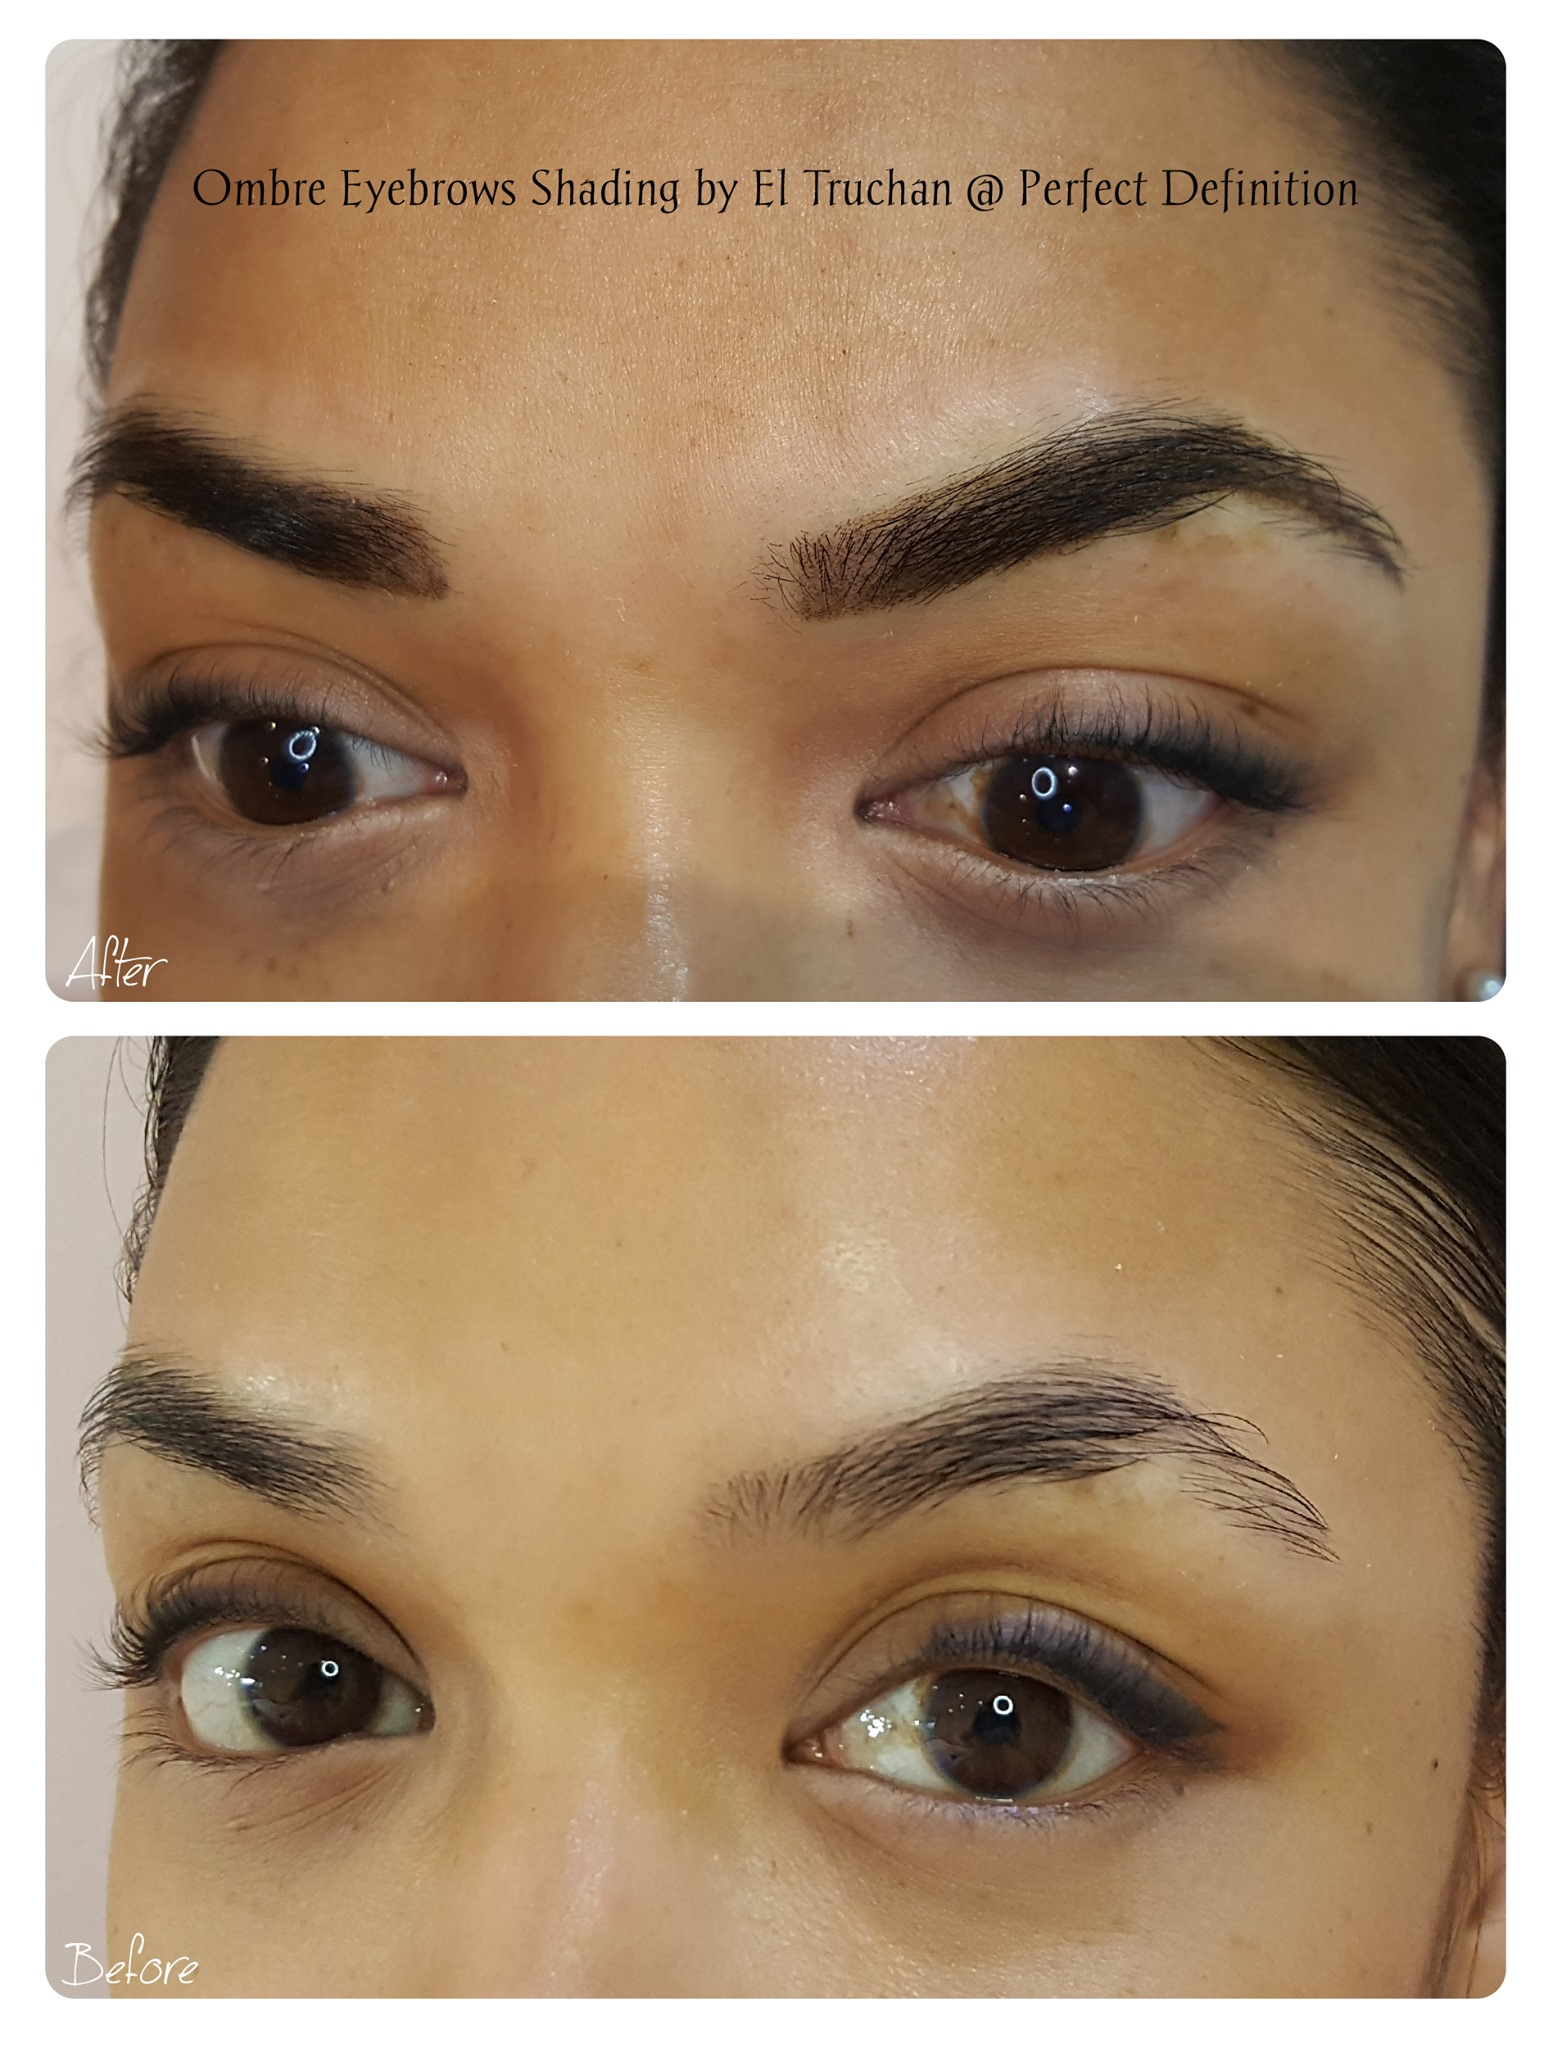 Ombre Eyebrows Shading by El Truchan @ P